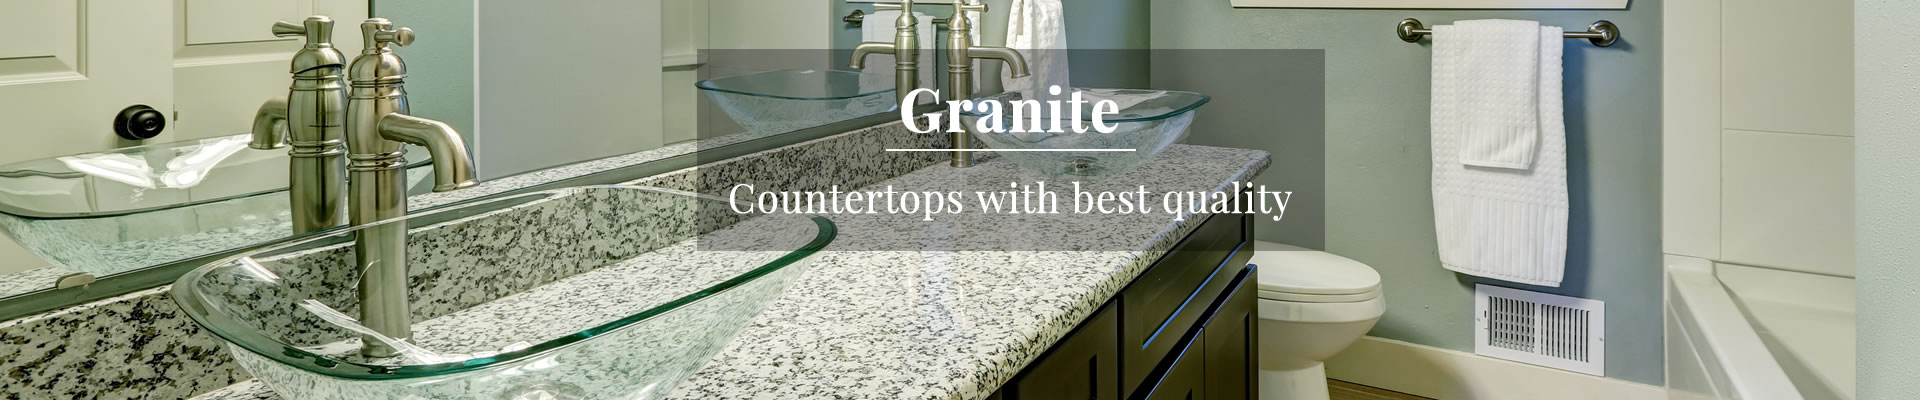 Granite Countertop Atlanta Georgia